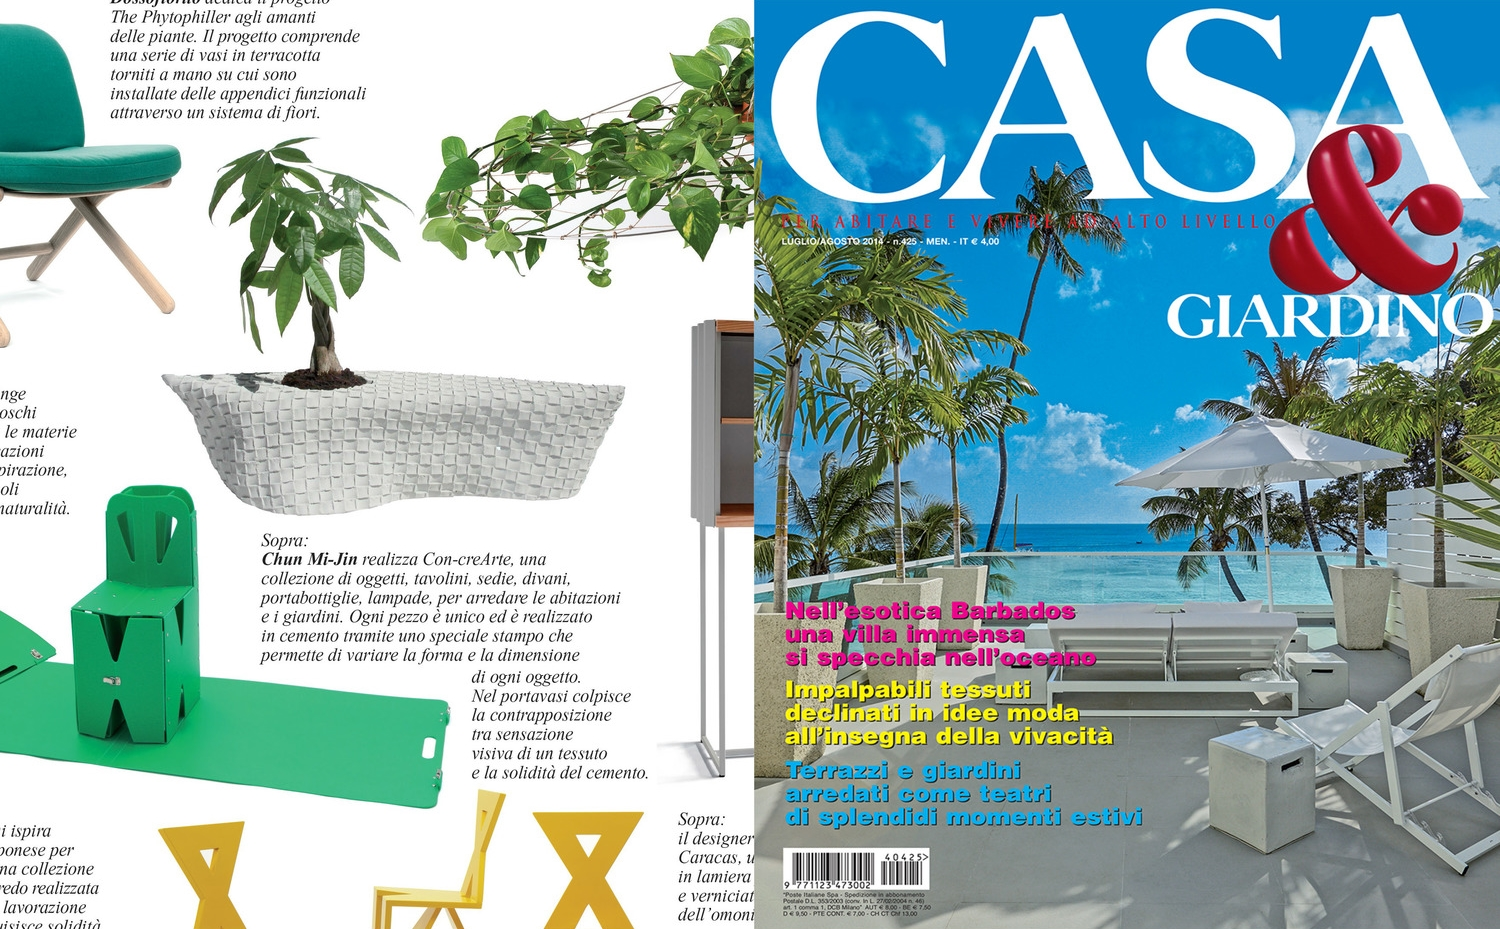 Casa & Giardino (July/August, 2014 issue)